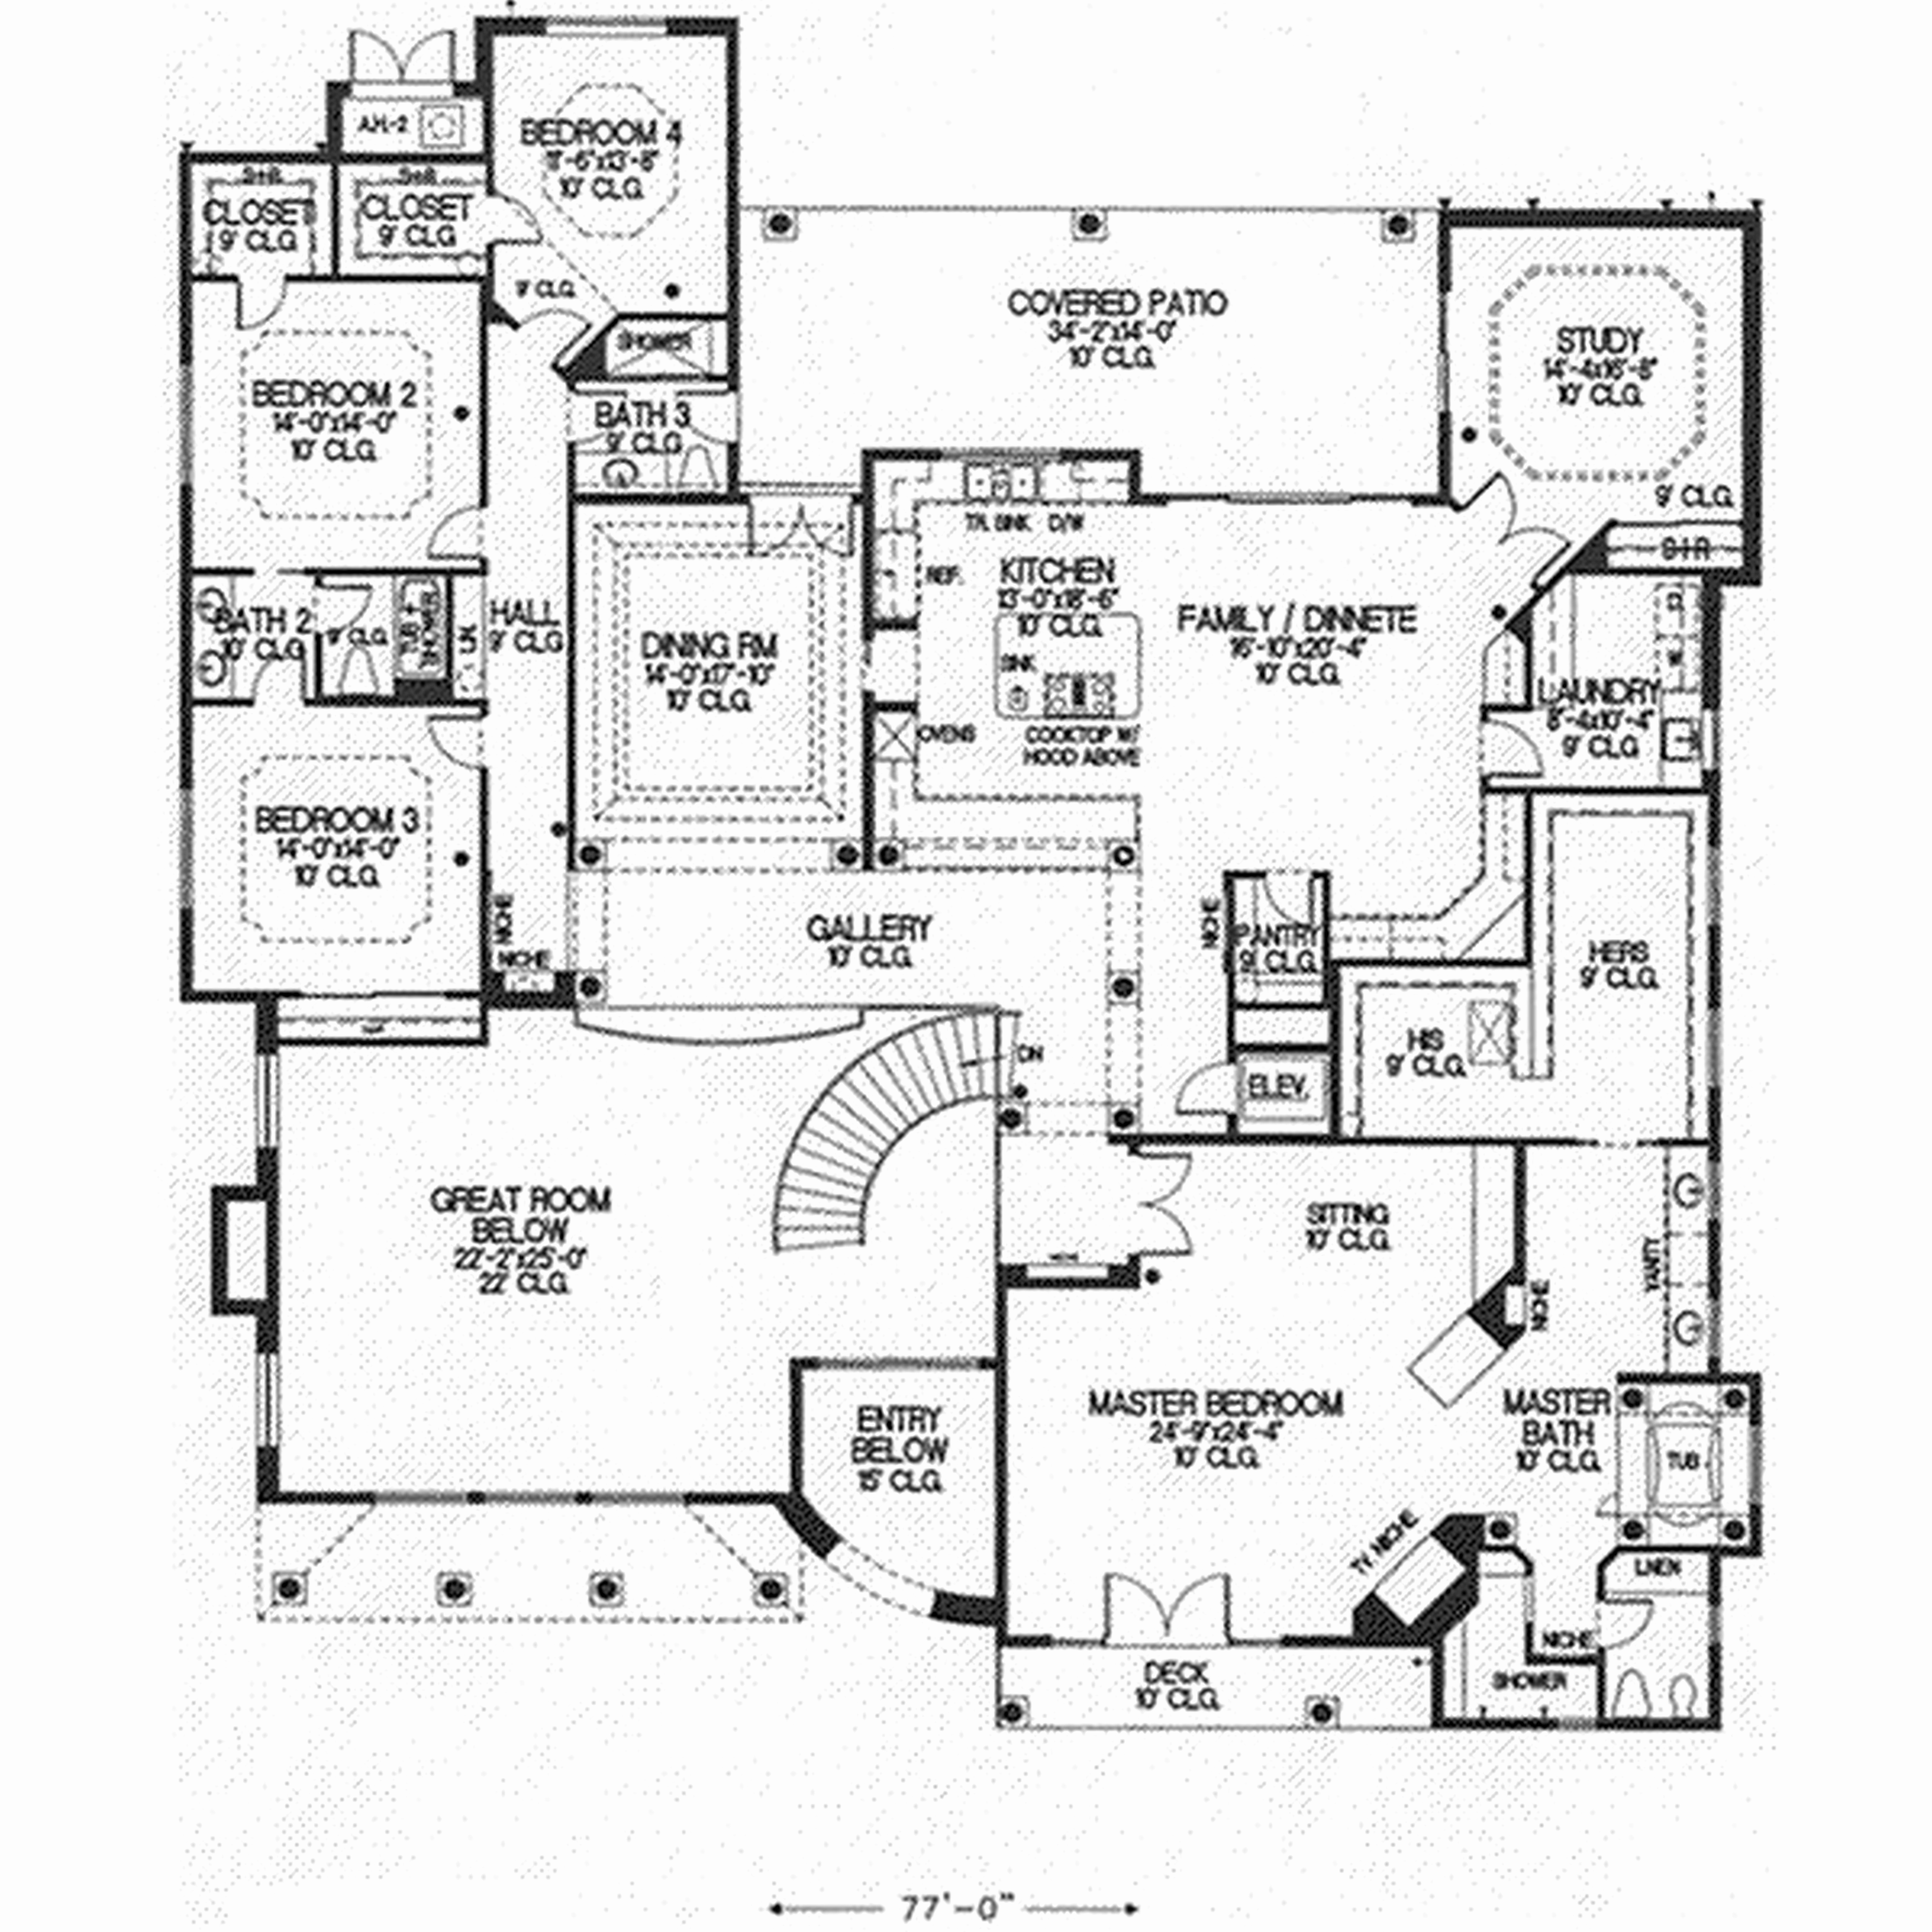 5000x5000 Apartments Draw A House Plan Fresh How To Draw By Hand Plans How